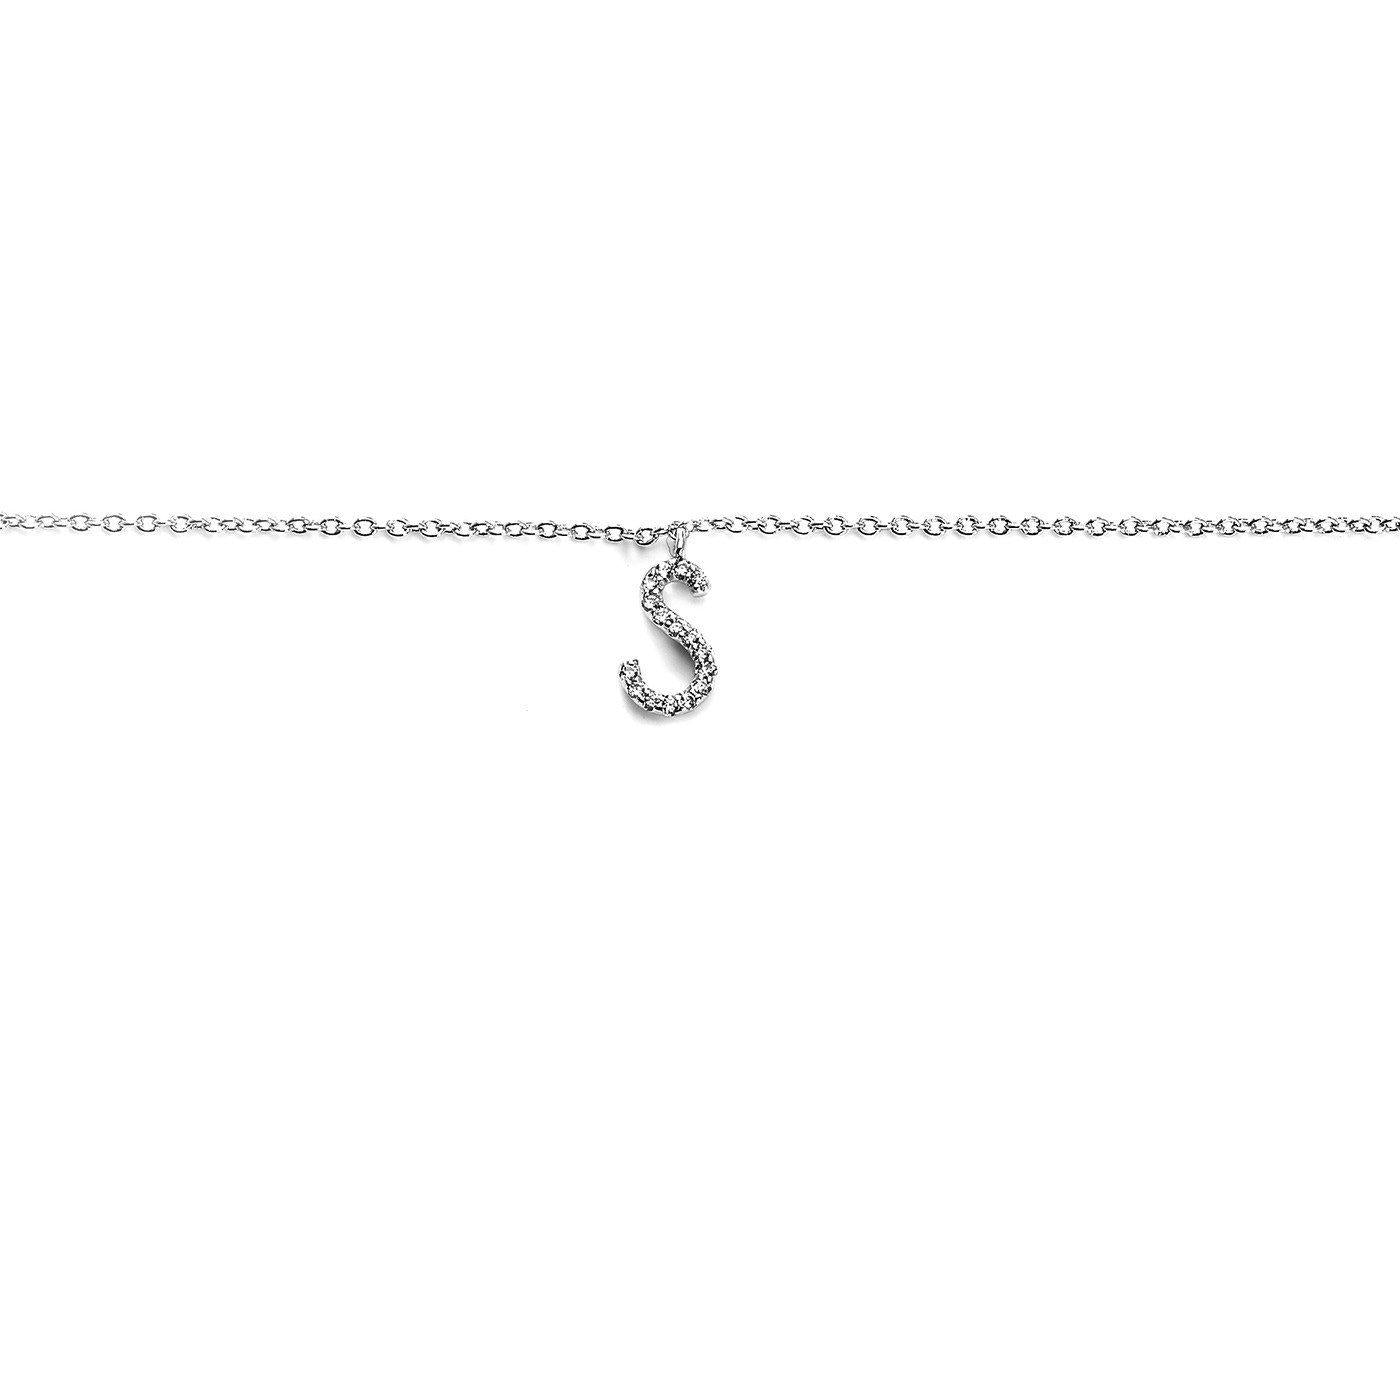 Your initial S Bracelet-Blinglane